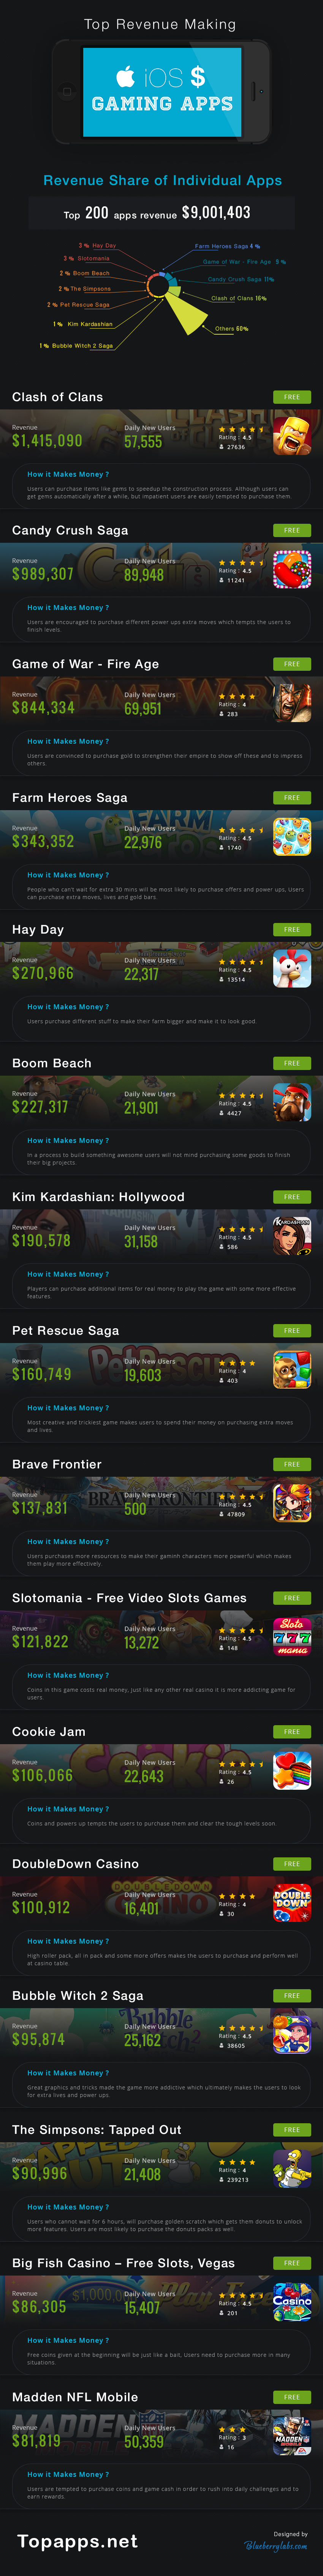 Top-Earning-iOS-Gaming-Apps